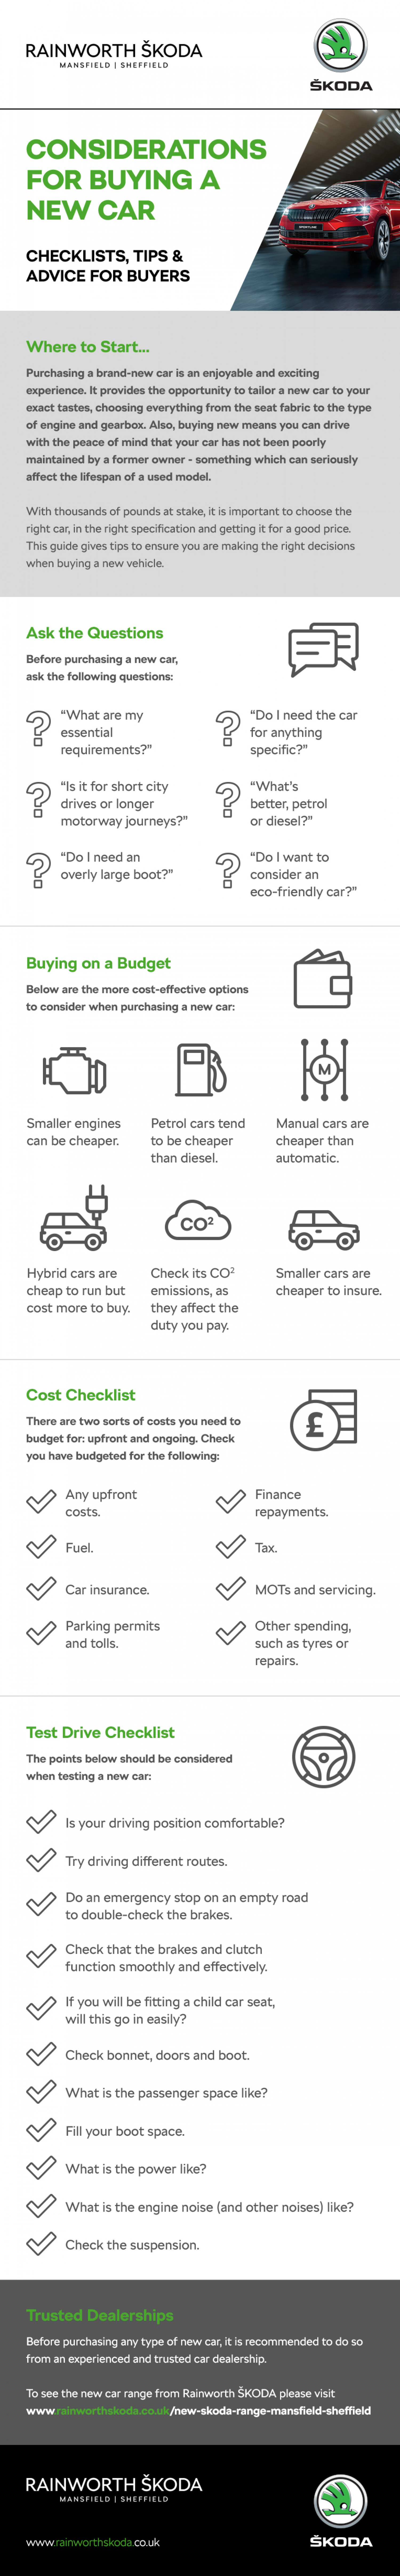 Considerations for Buying a New Car Infographic